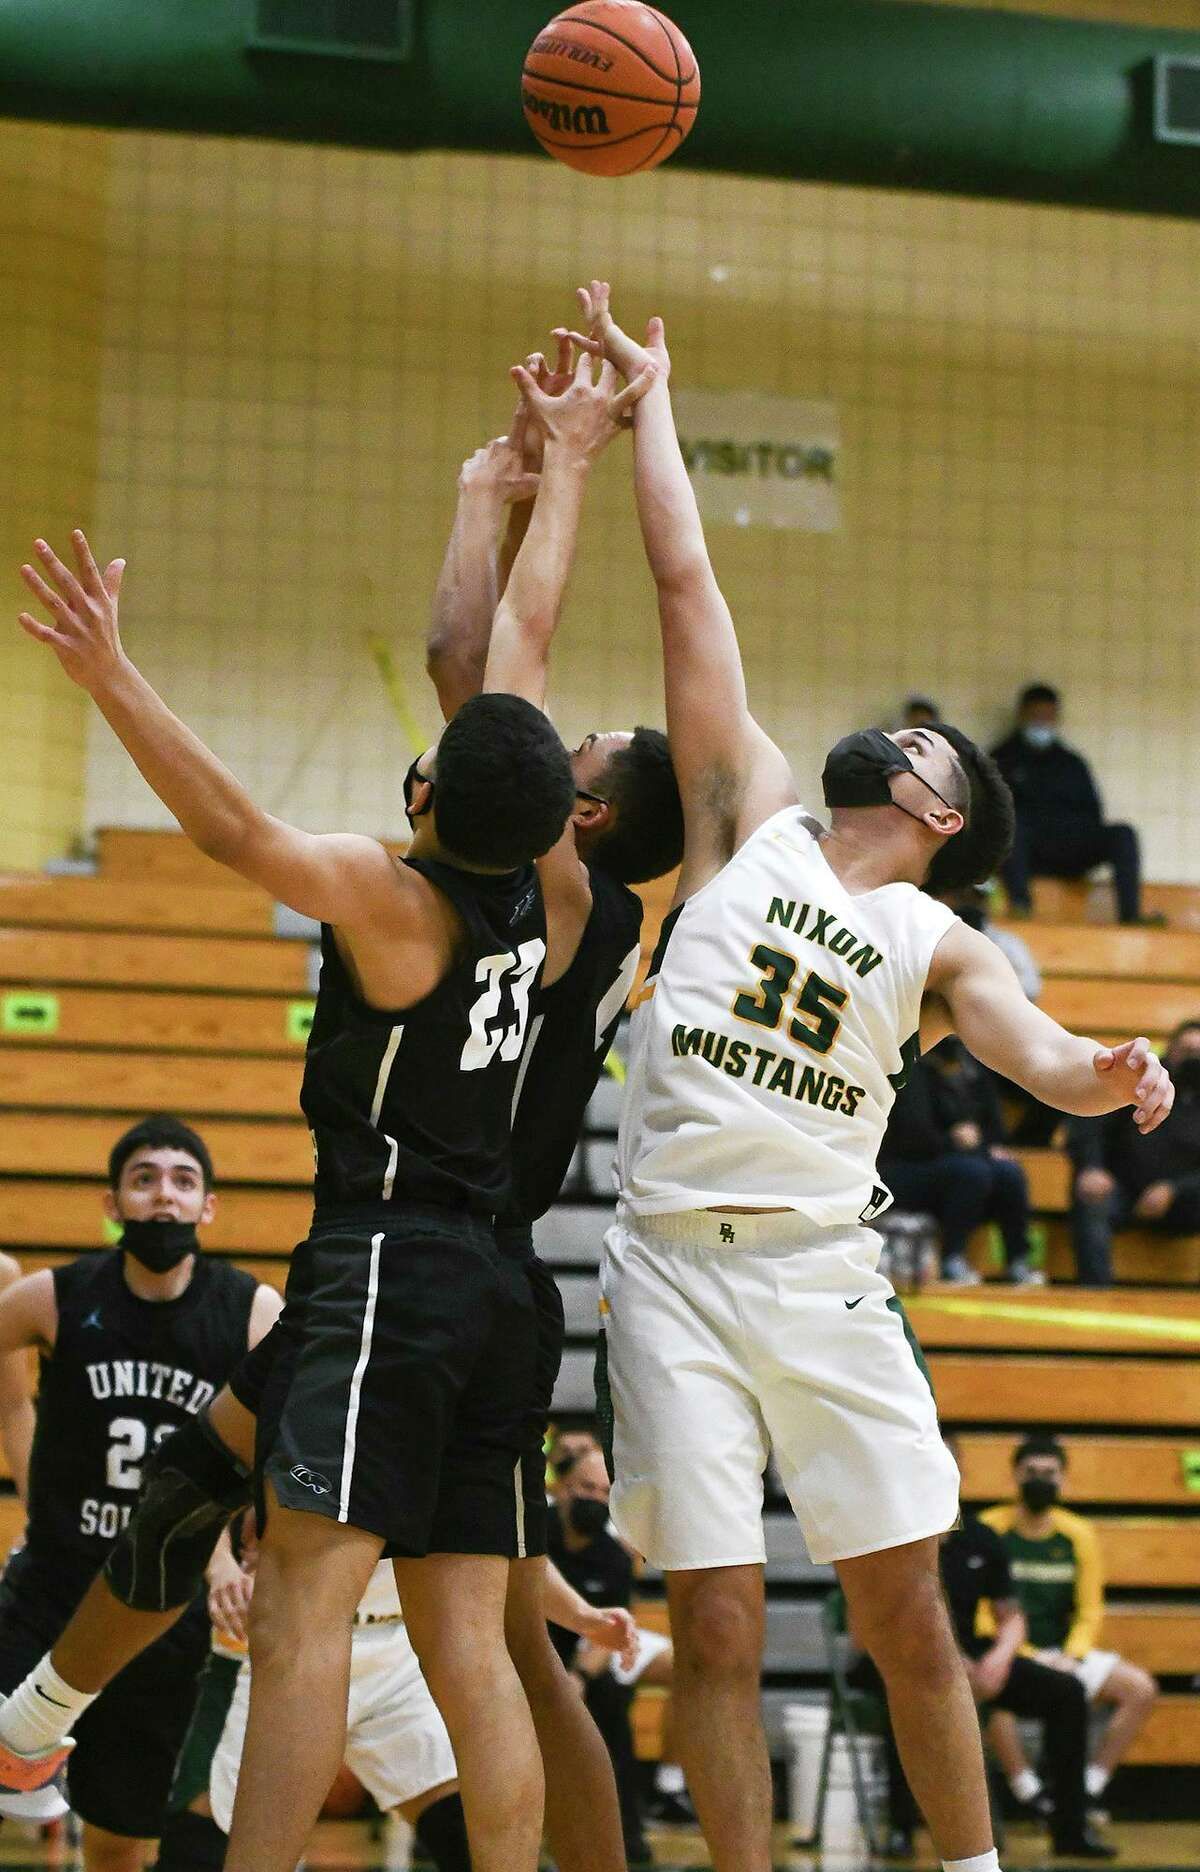 Nixon's Bryan Garcia scored eight points as the Mustangs defeated United South 56-55 on Friday.